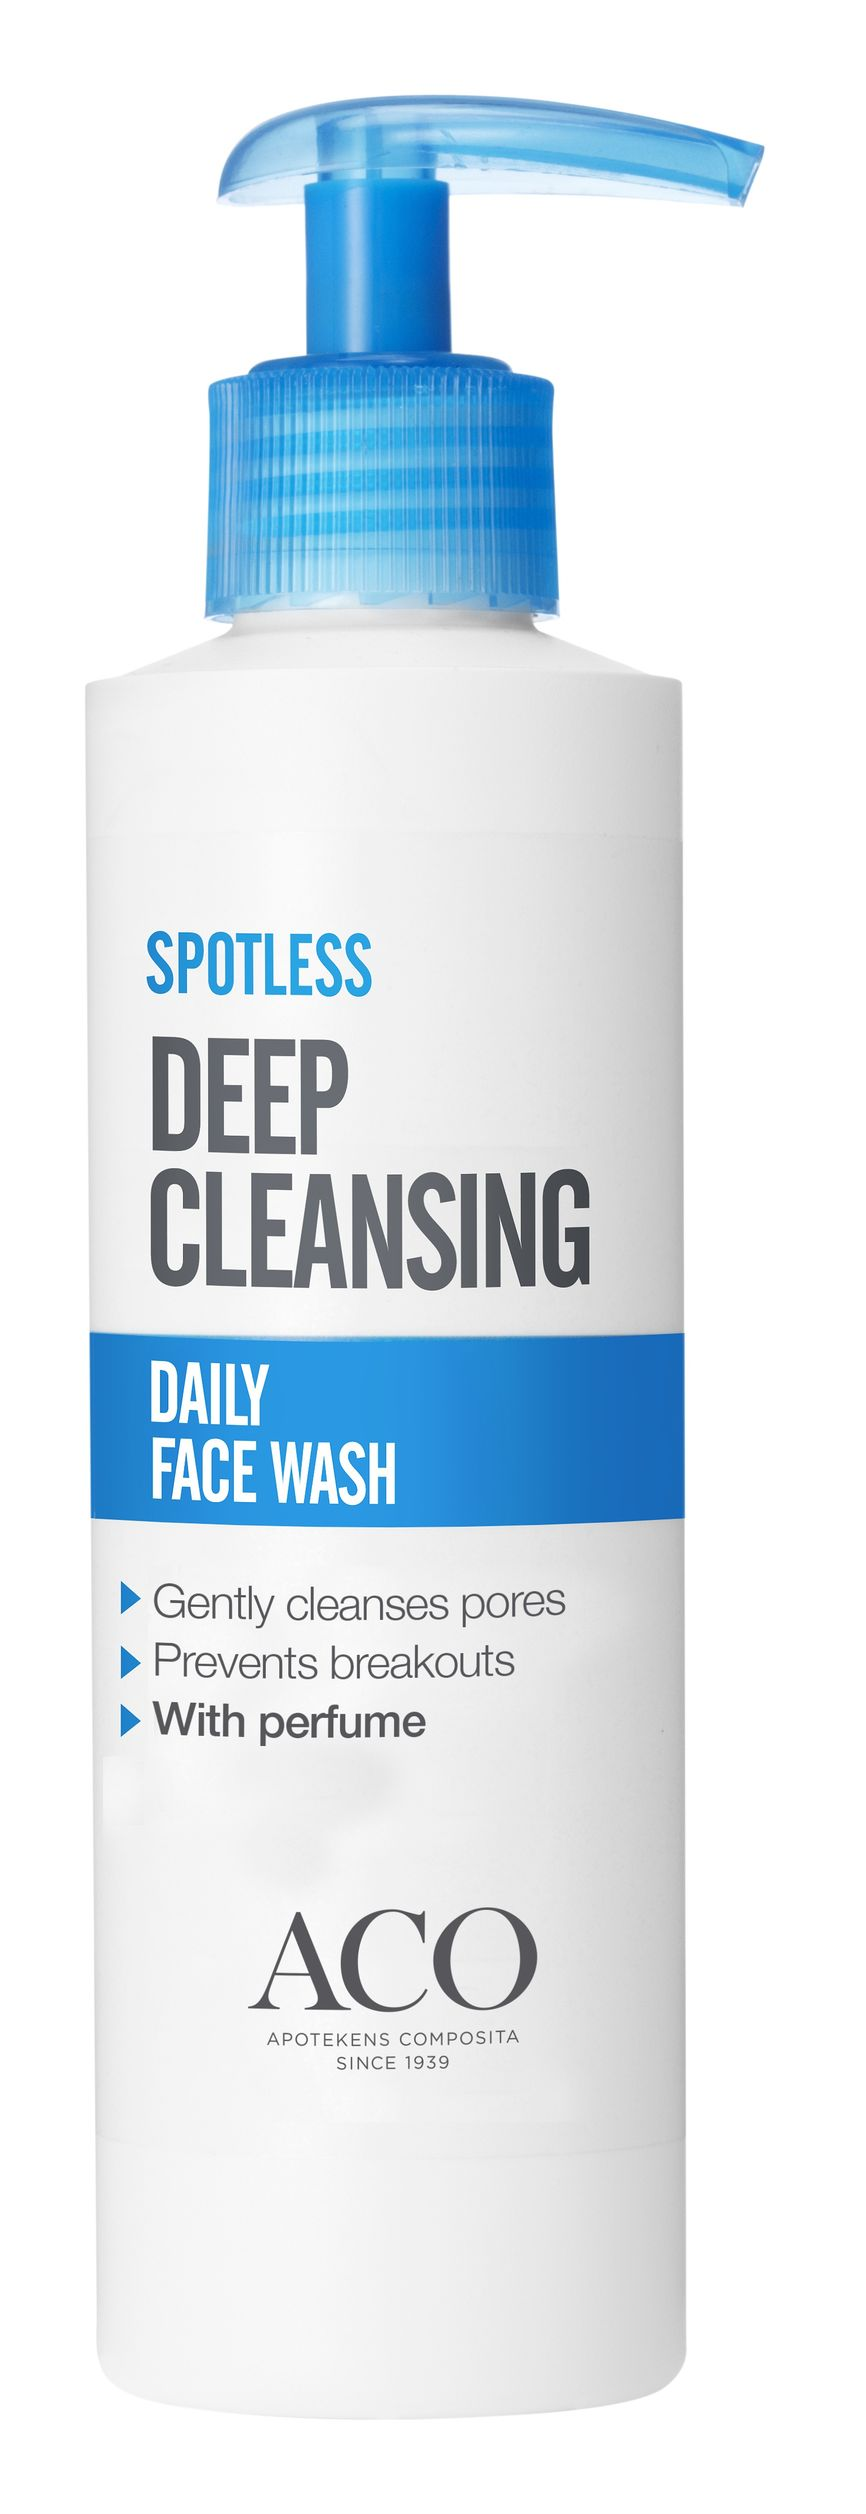 ACO Spotless Daily Face Wash 200ml